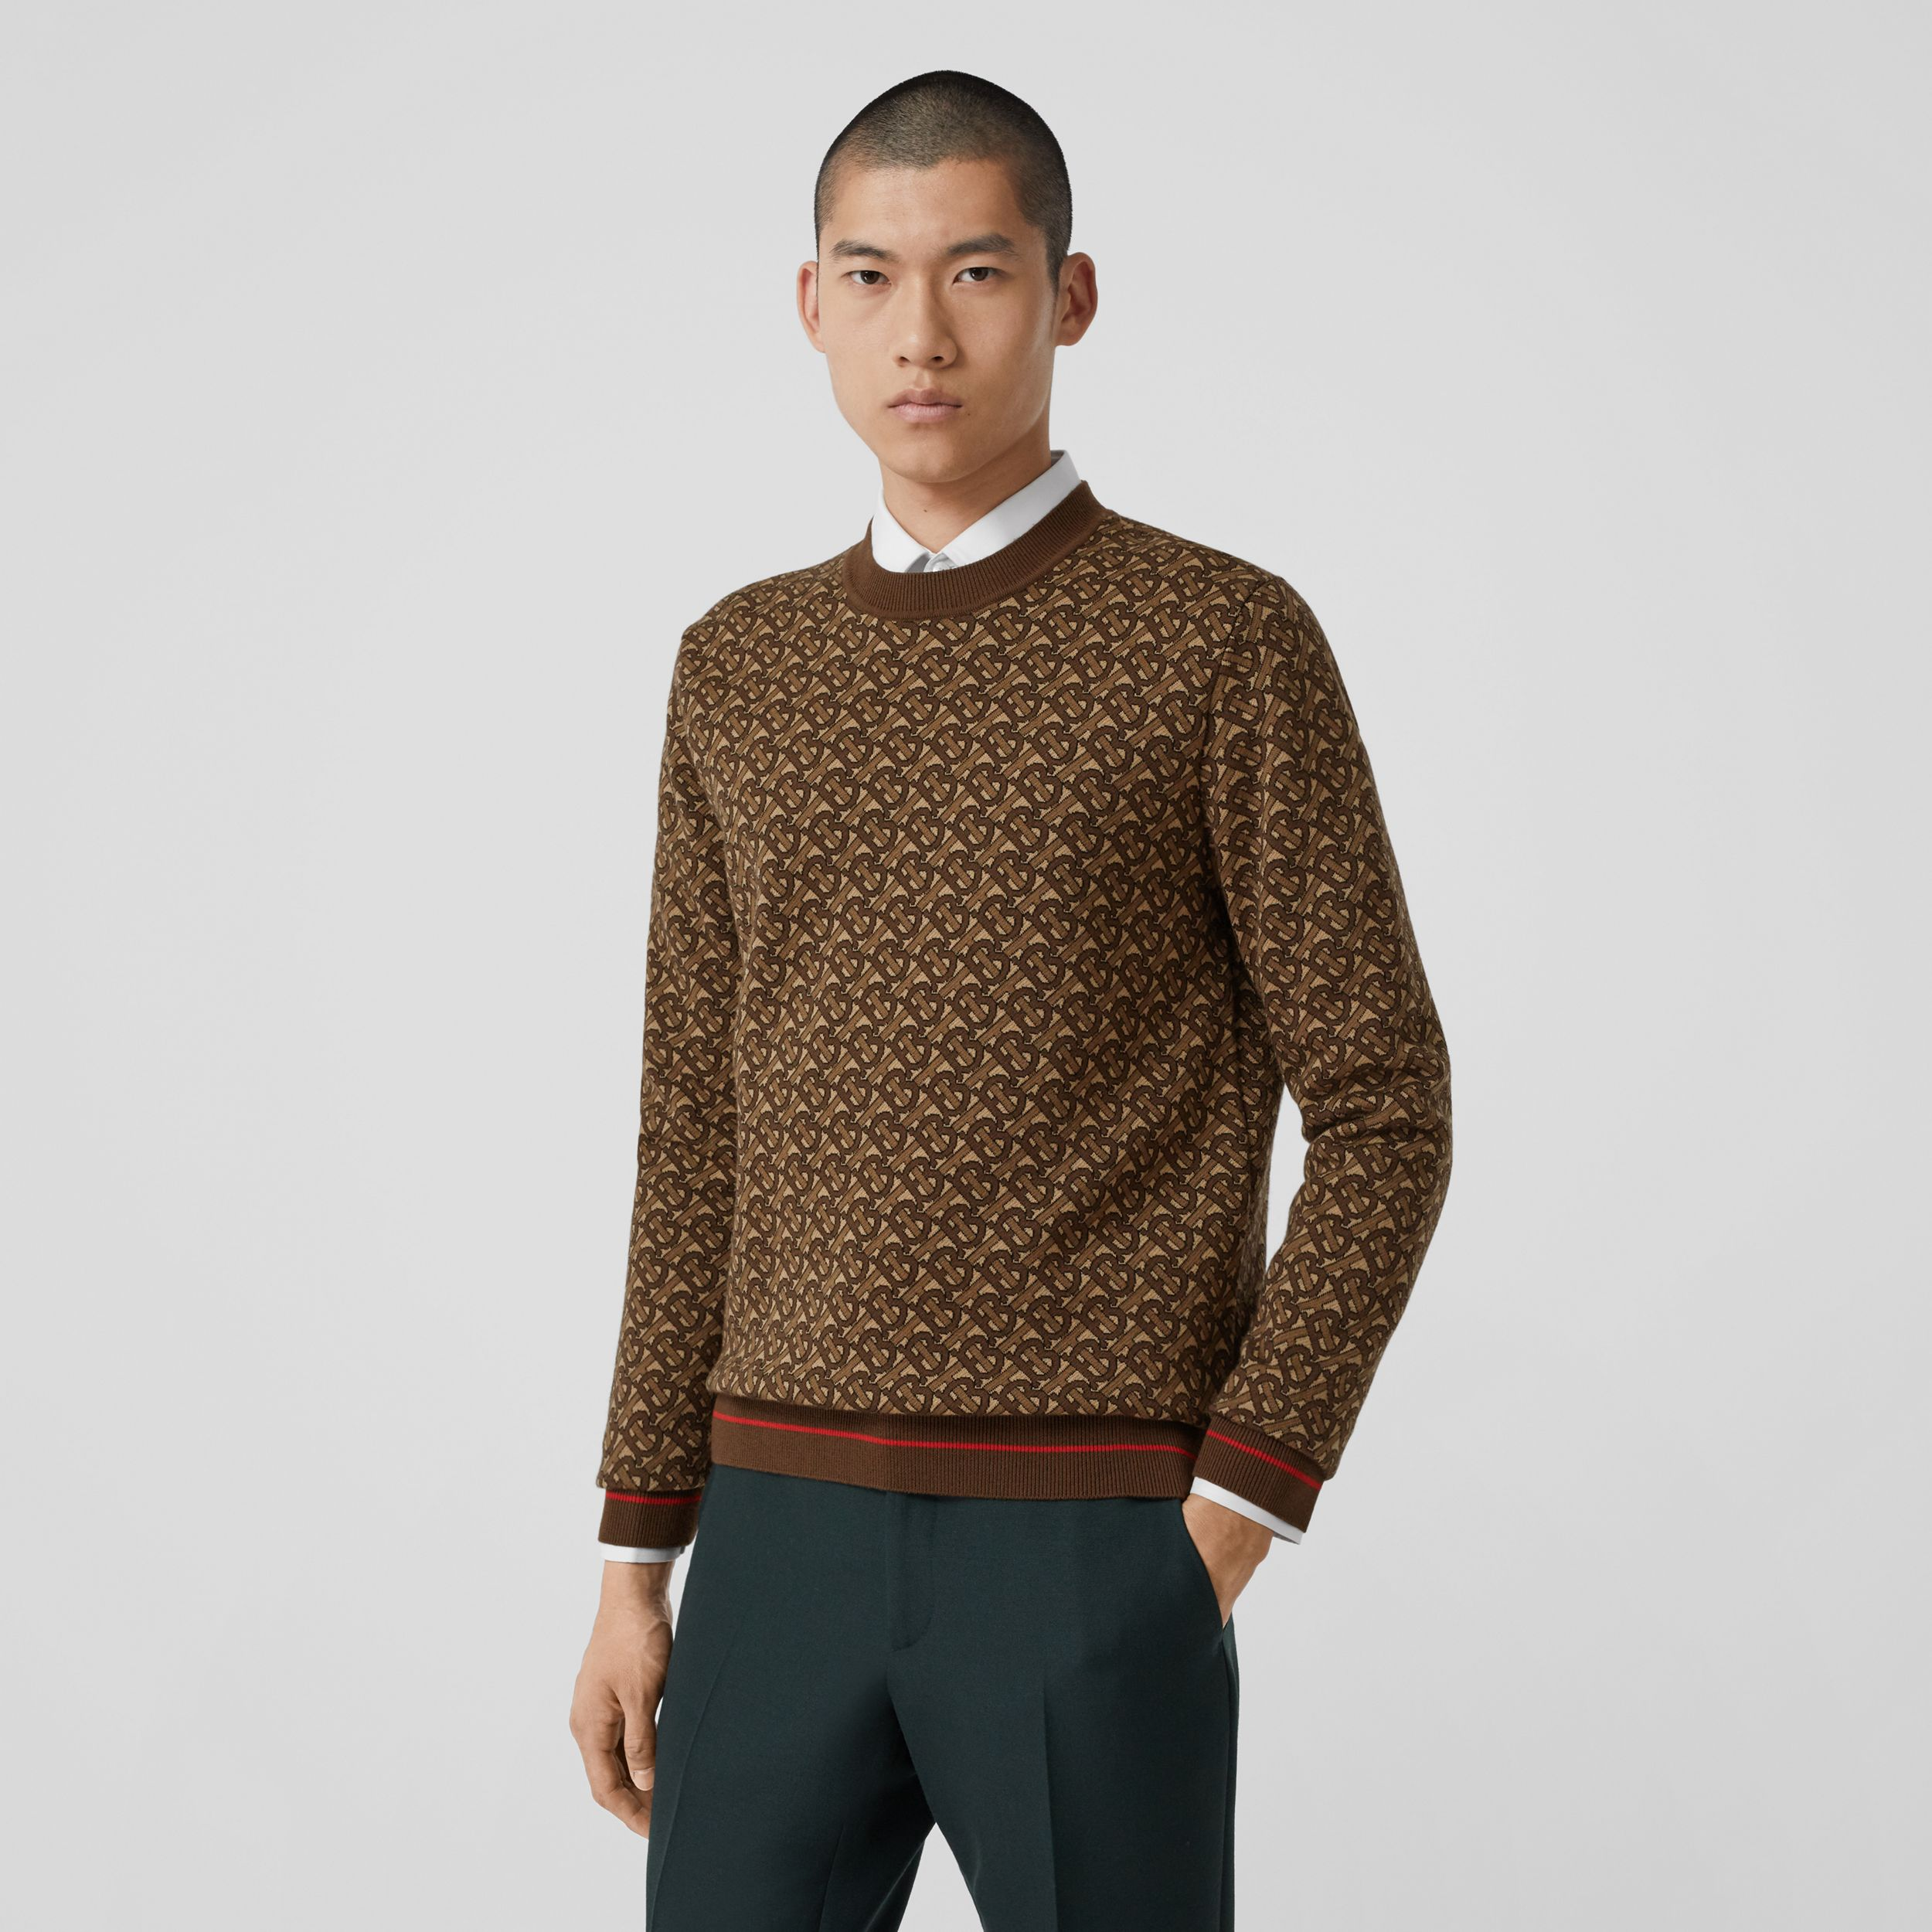 Monogram Merino Wool Jacquard Sweater in Bridle Brown - Men | Burberry Canada - 1